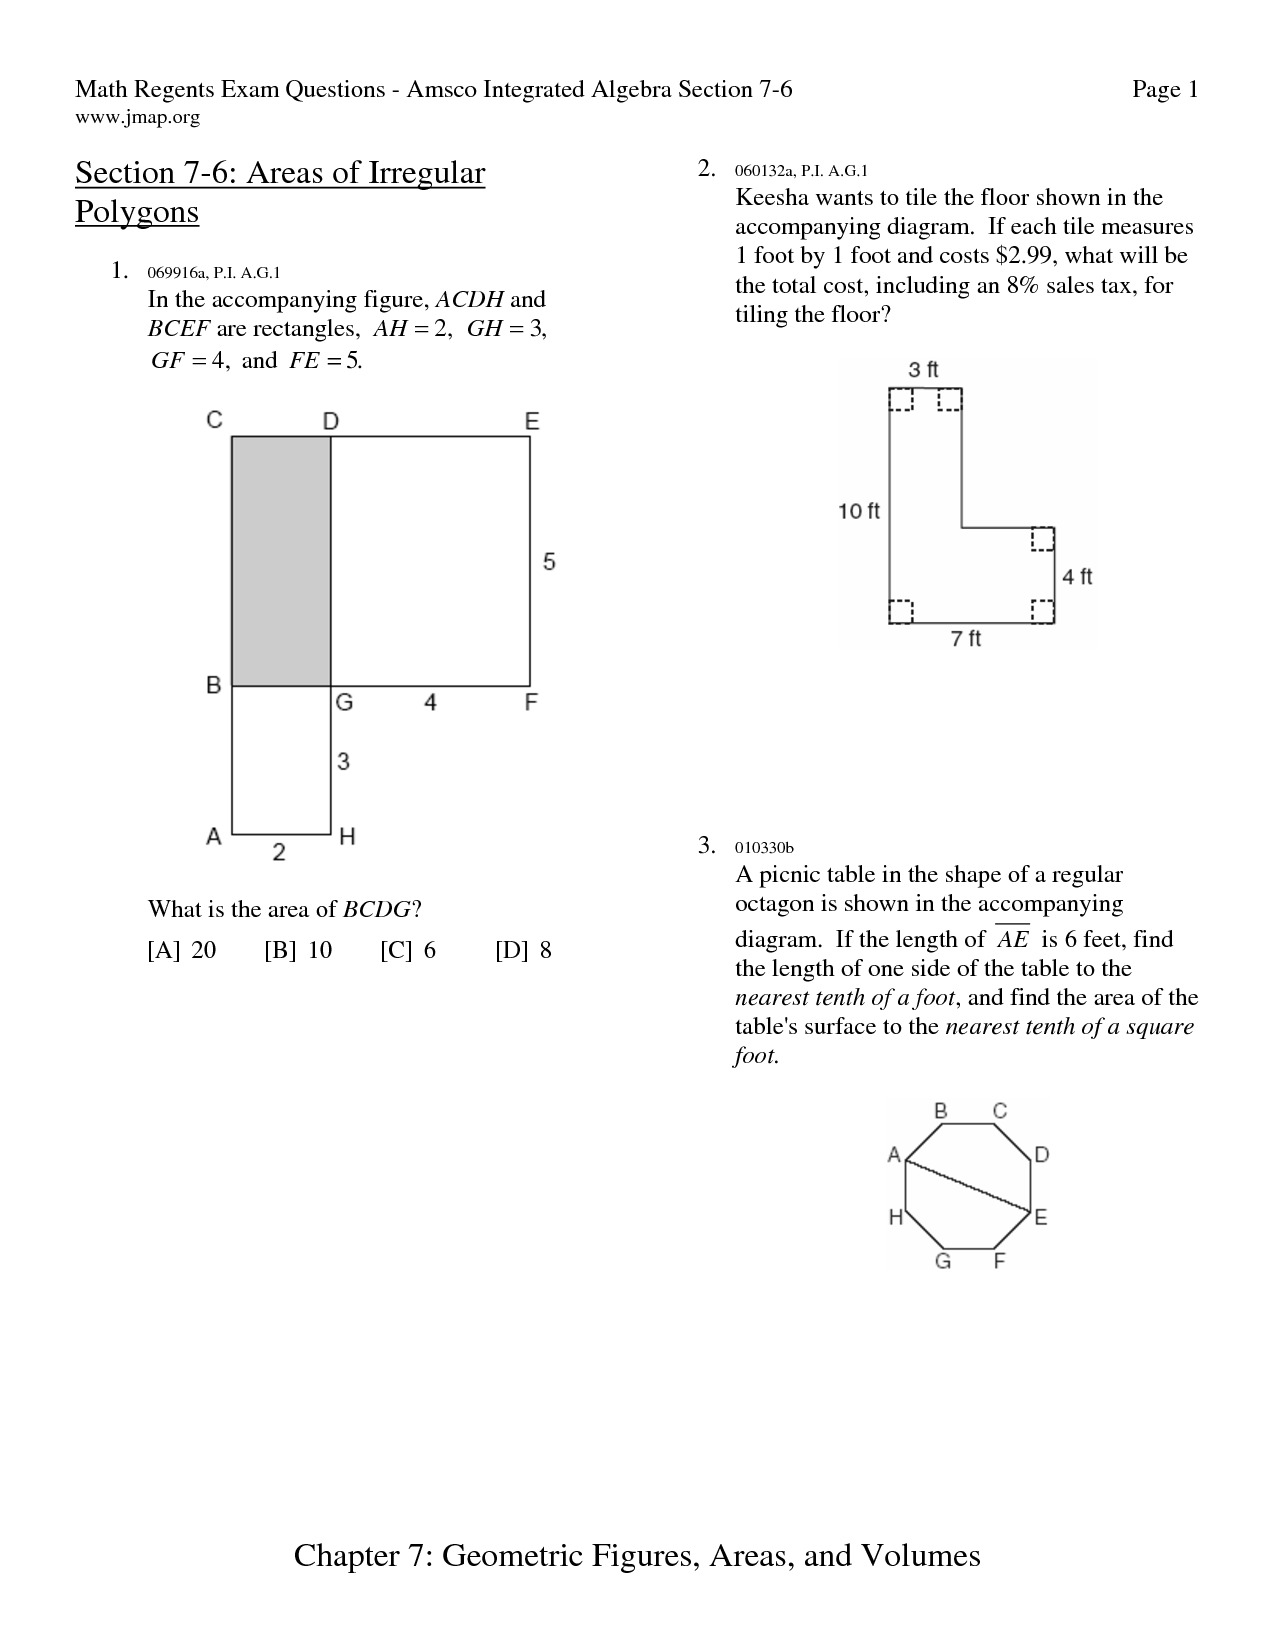 Area of Polygons Worksheets Free   Area Irregular Polygons Worksheet - PDF    Word problem worksheets [ 1650 x 1275 Pixel ]